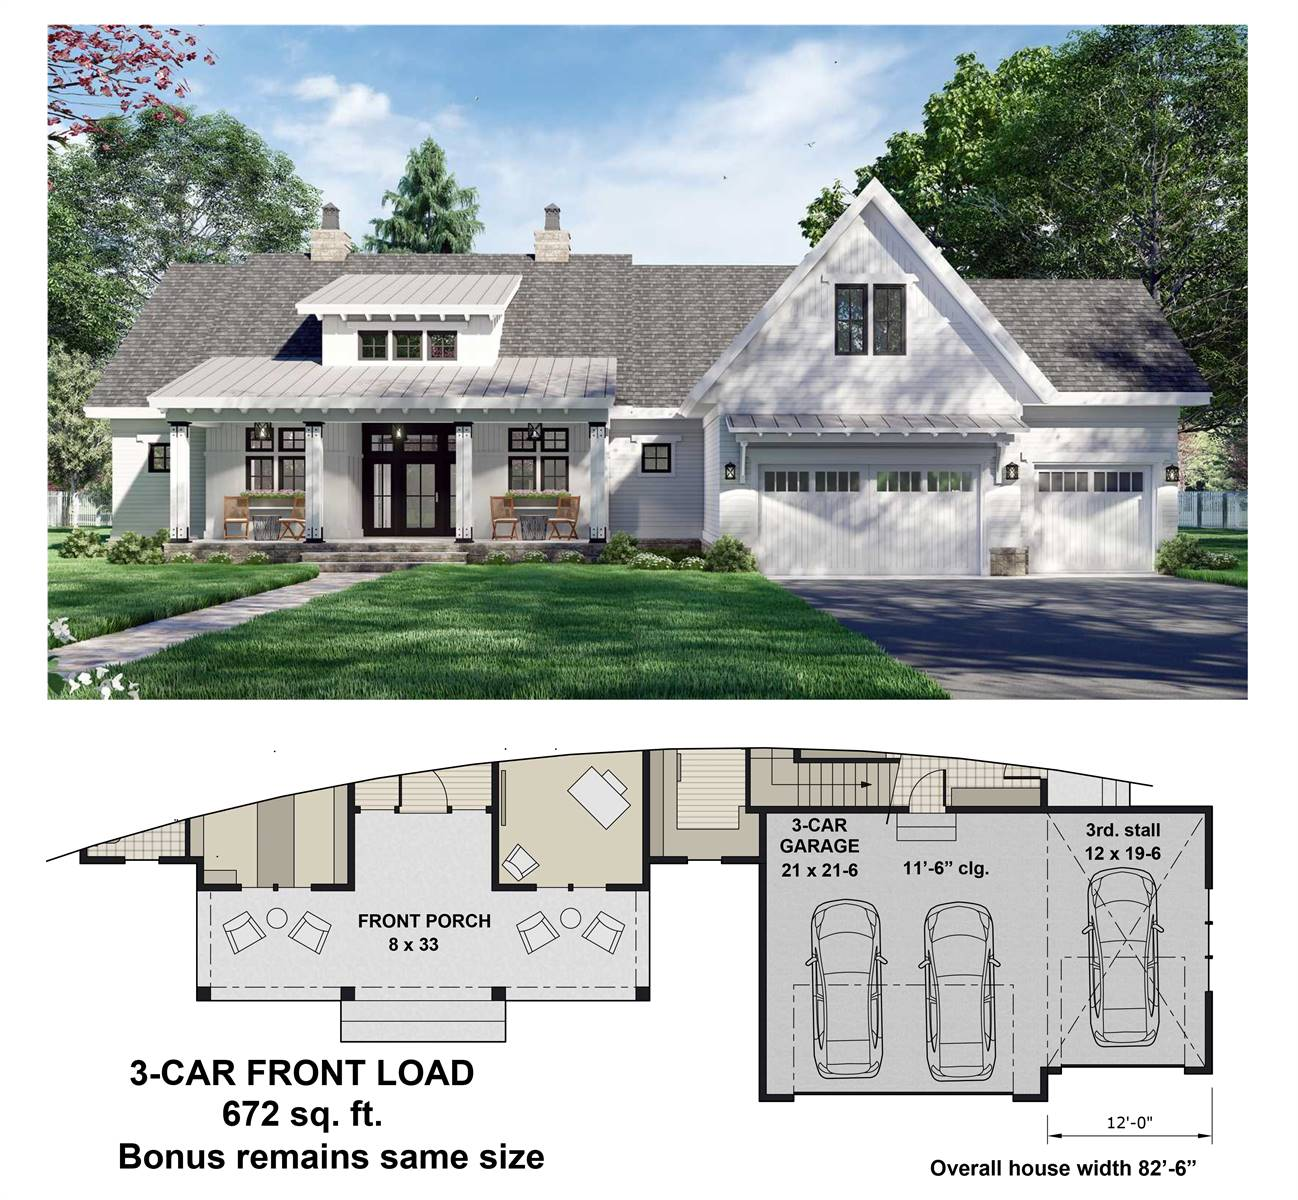 3-Car Front Entry Option